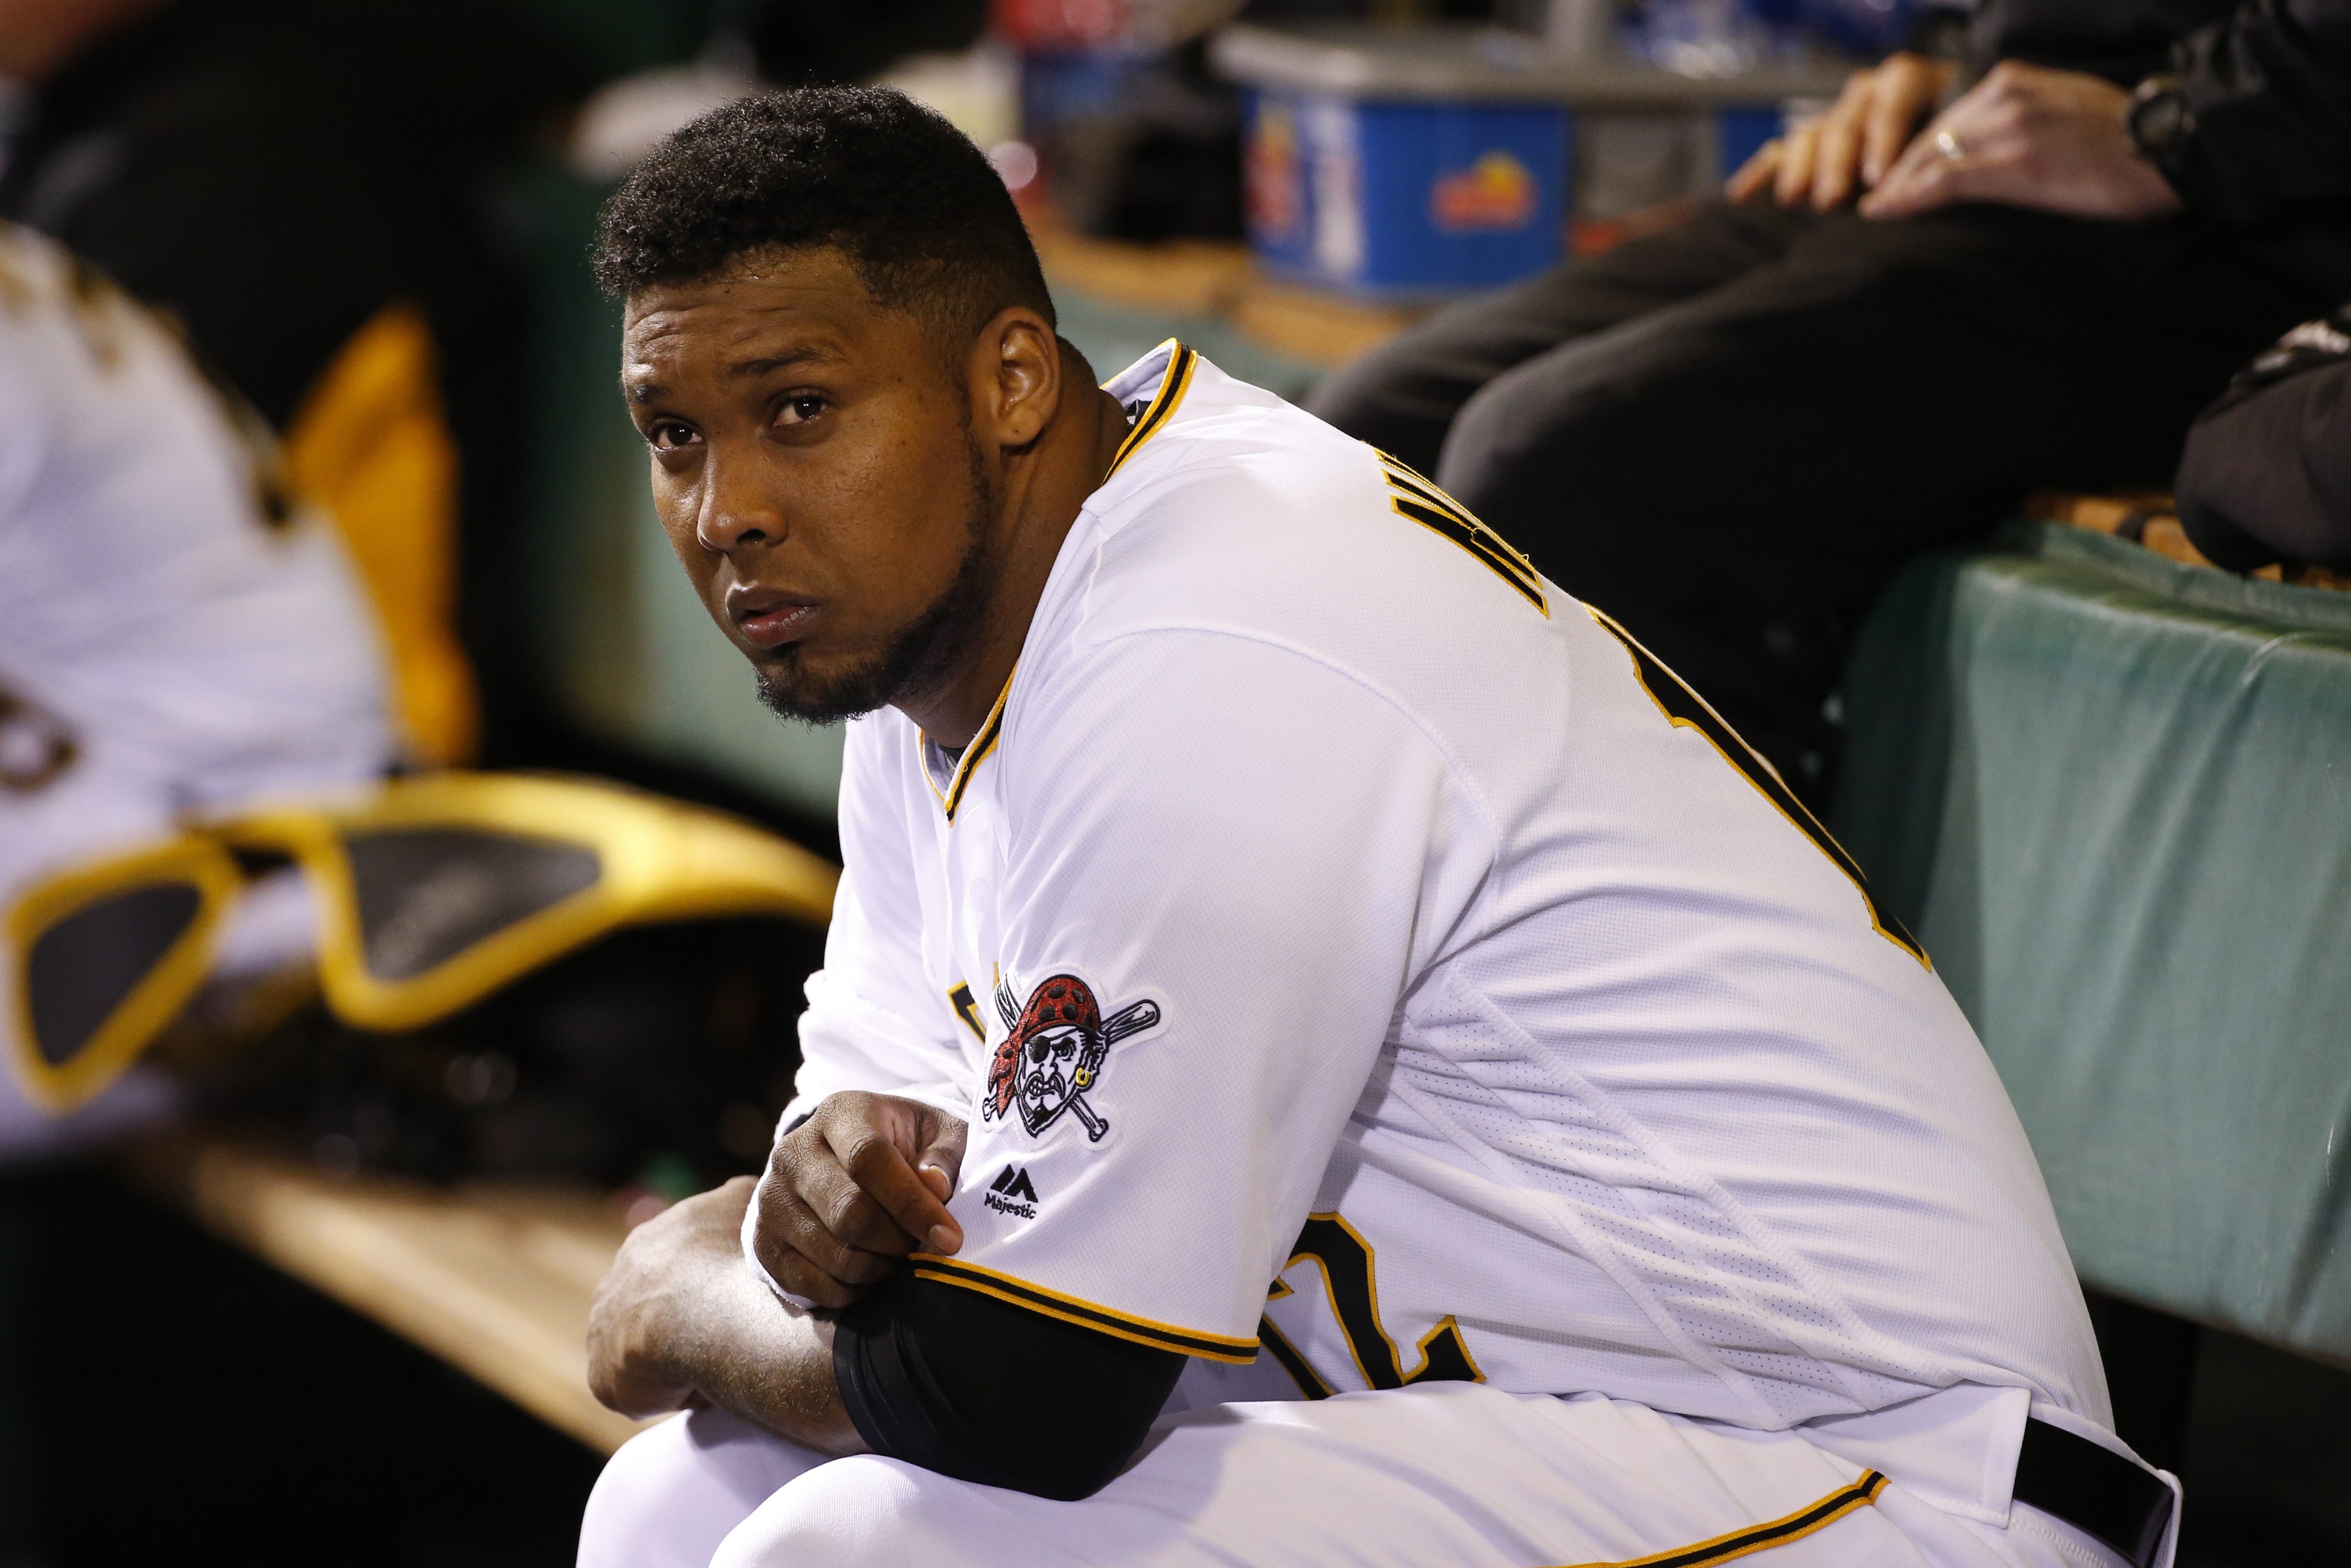 Pittsburgh Pirates pitcher Juan Nicasio sits in the dugout during the fifth inning of the team's baseball game against the St. Louis Cardinals in Pittsburgh, Wednesday, April 6, 2016. (AP Photo/Gene J. Puskar)